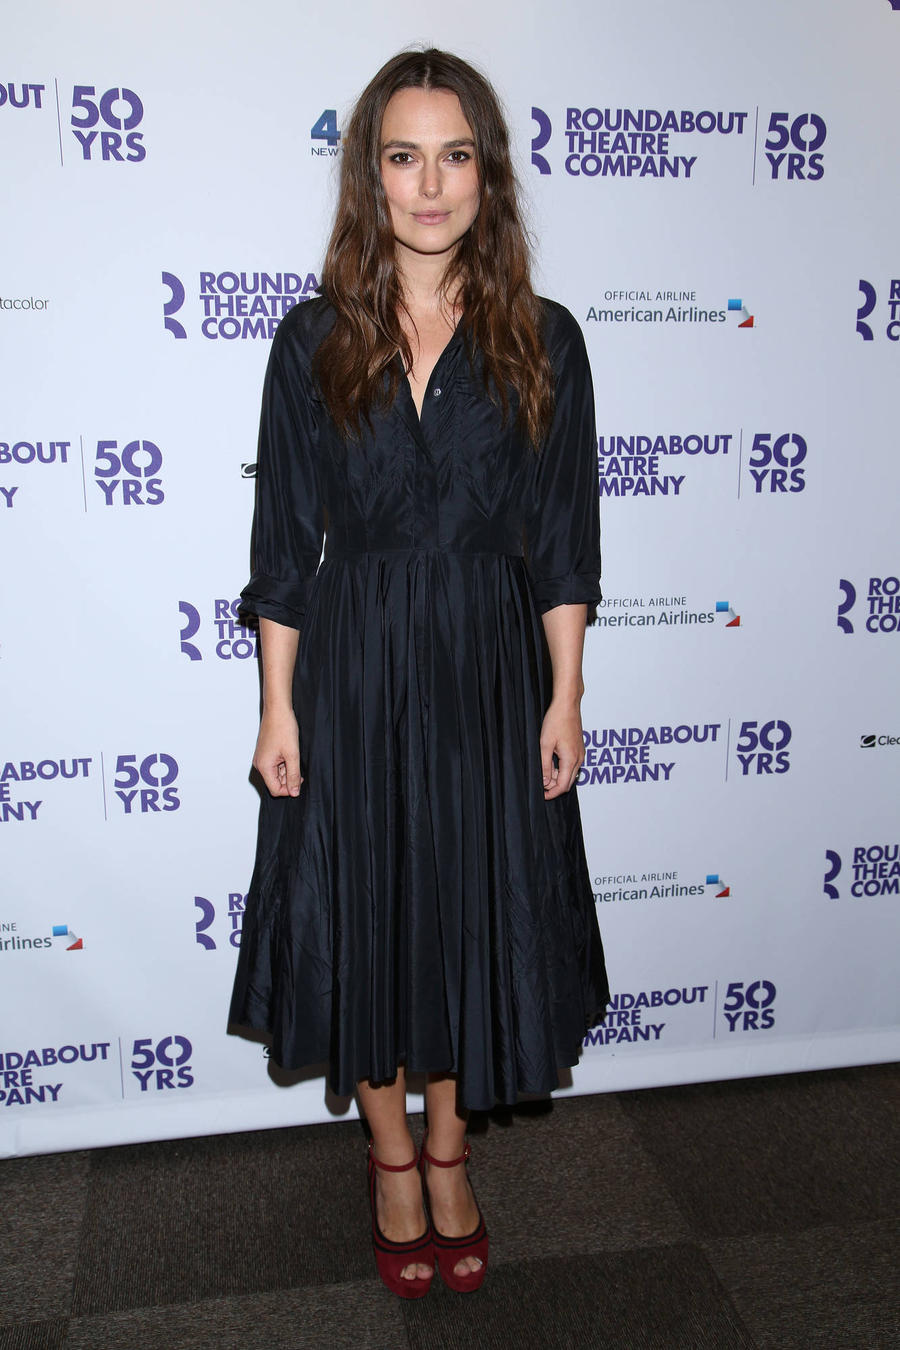 Keira Knightley: 'Expensive Childcare Saved My Career'